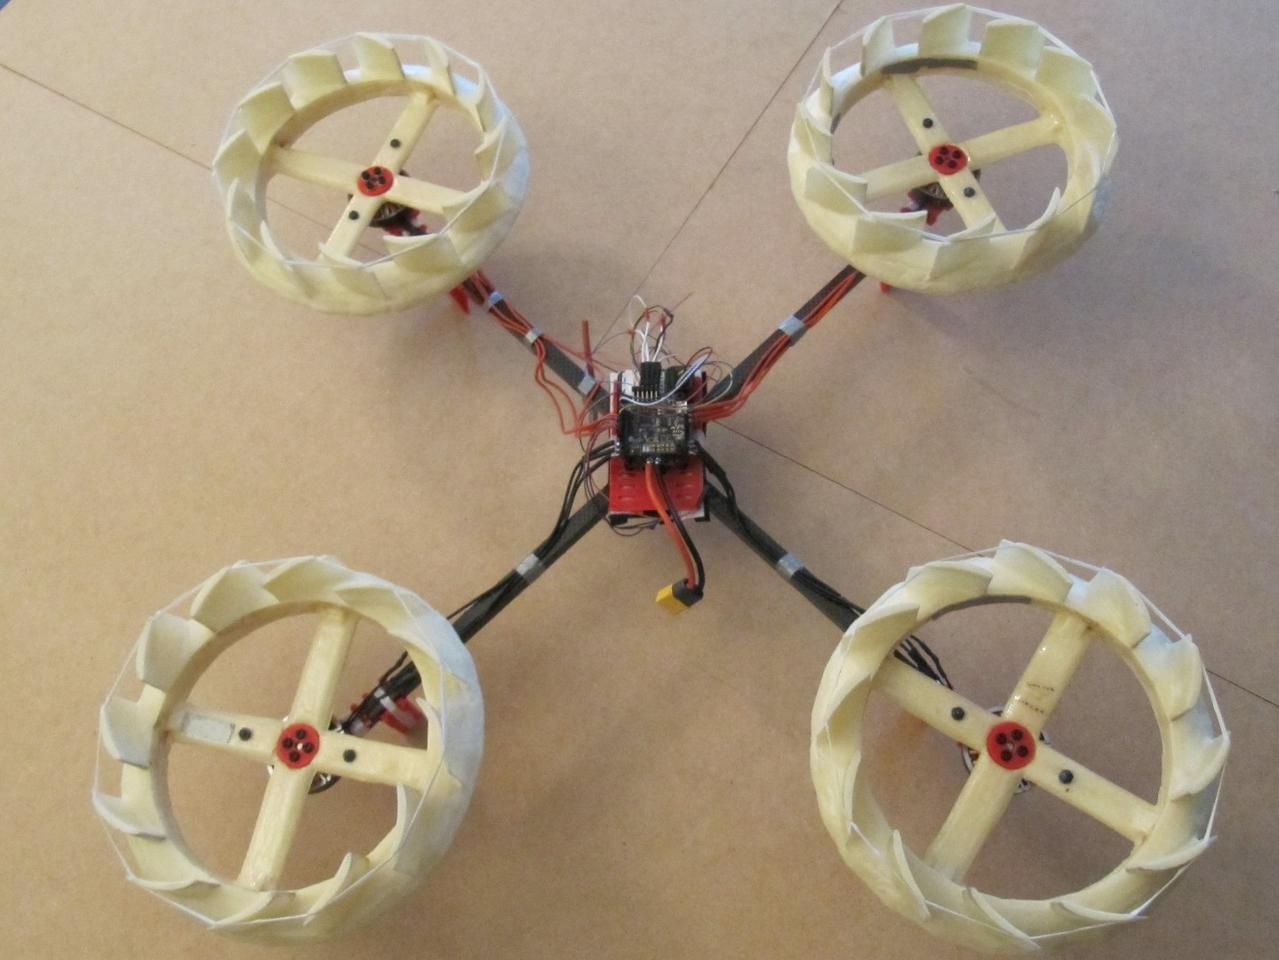 Instead of the traditional propellers, the Whisper Drone utilizes ring-shaped vaned rotors